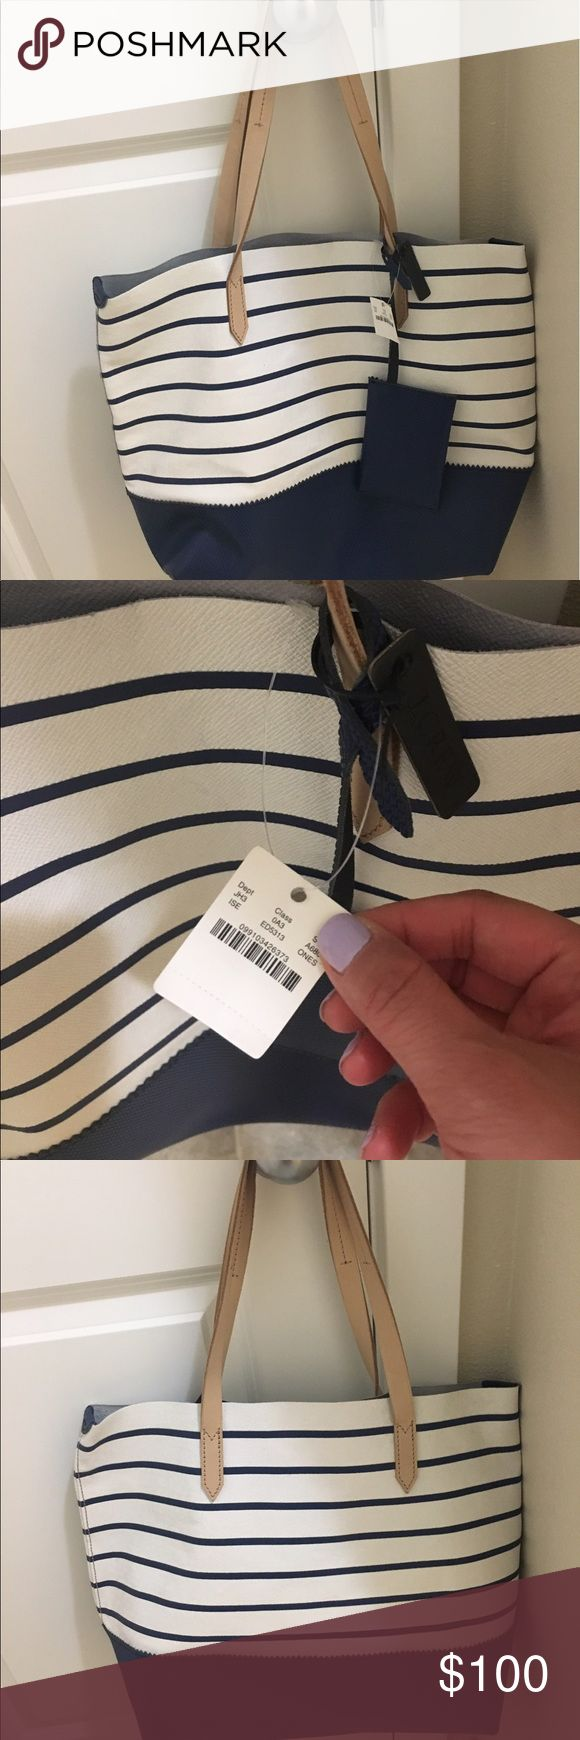 J crew Downing Stripe Tote Bag Popular Downing tote bag. It's New and good leather.stripe style and thin leather around top area. J. Crew Bags Totes